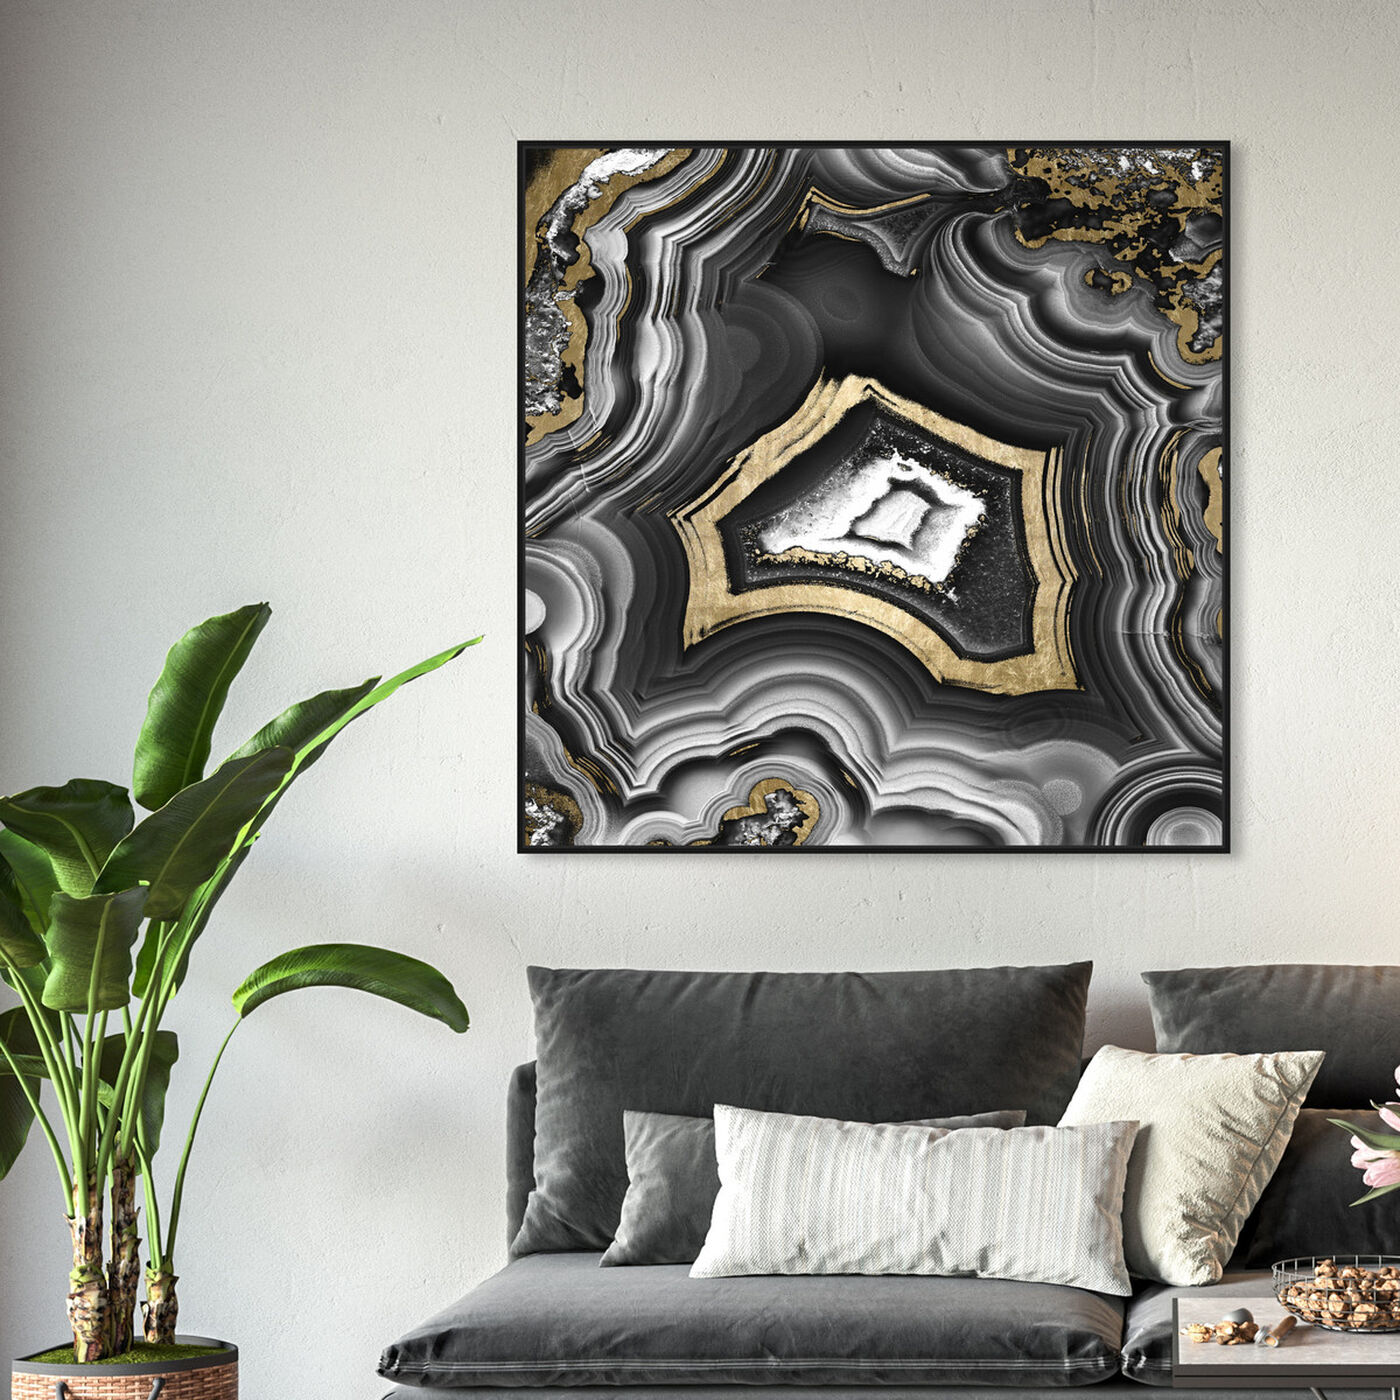 Hanging view of Adoregeo Square featuring abstract and crystals art.